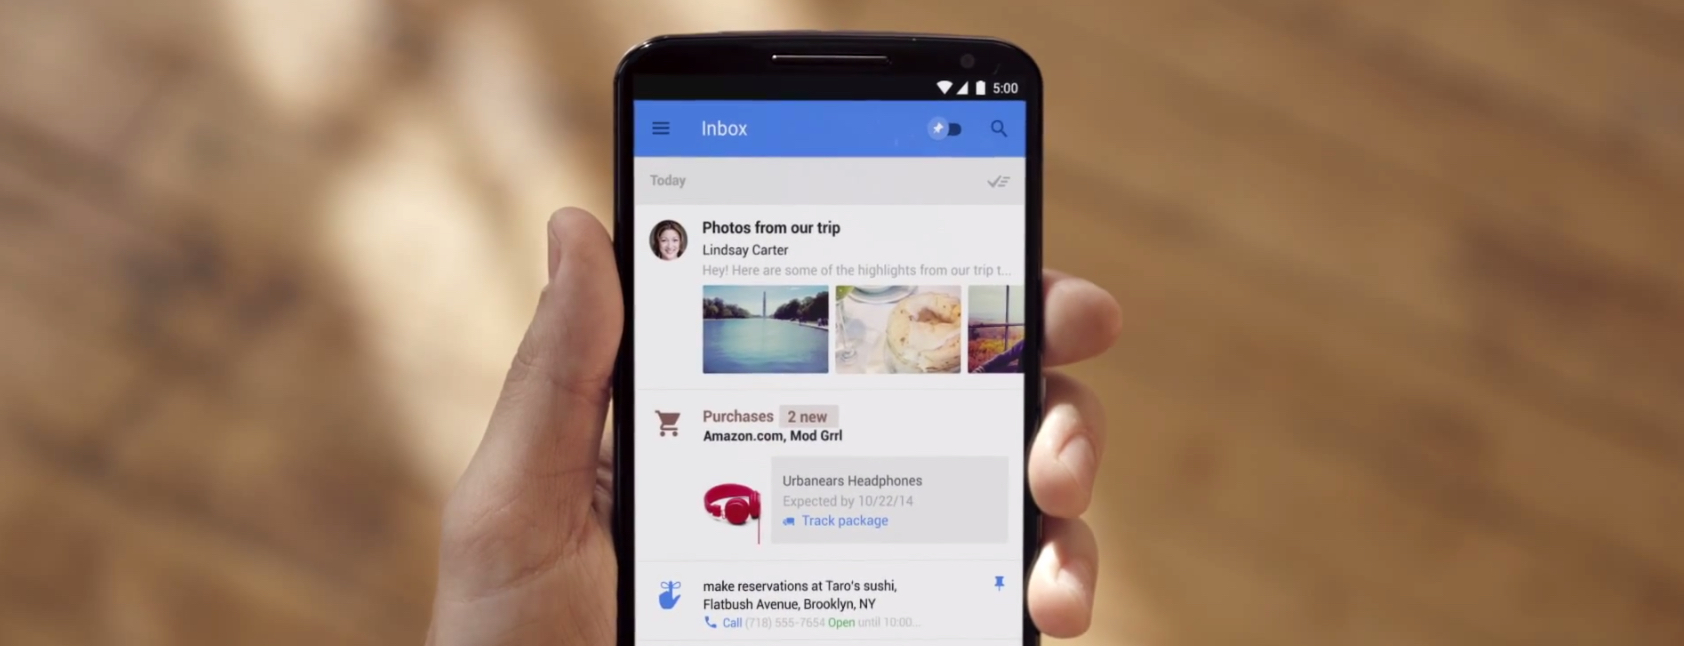 Google announces Inbox: A more intelligent way to handle email – The Next Web